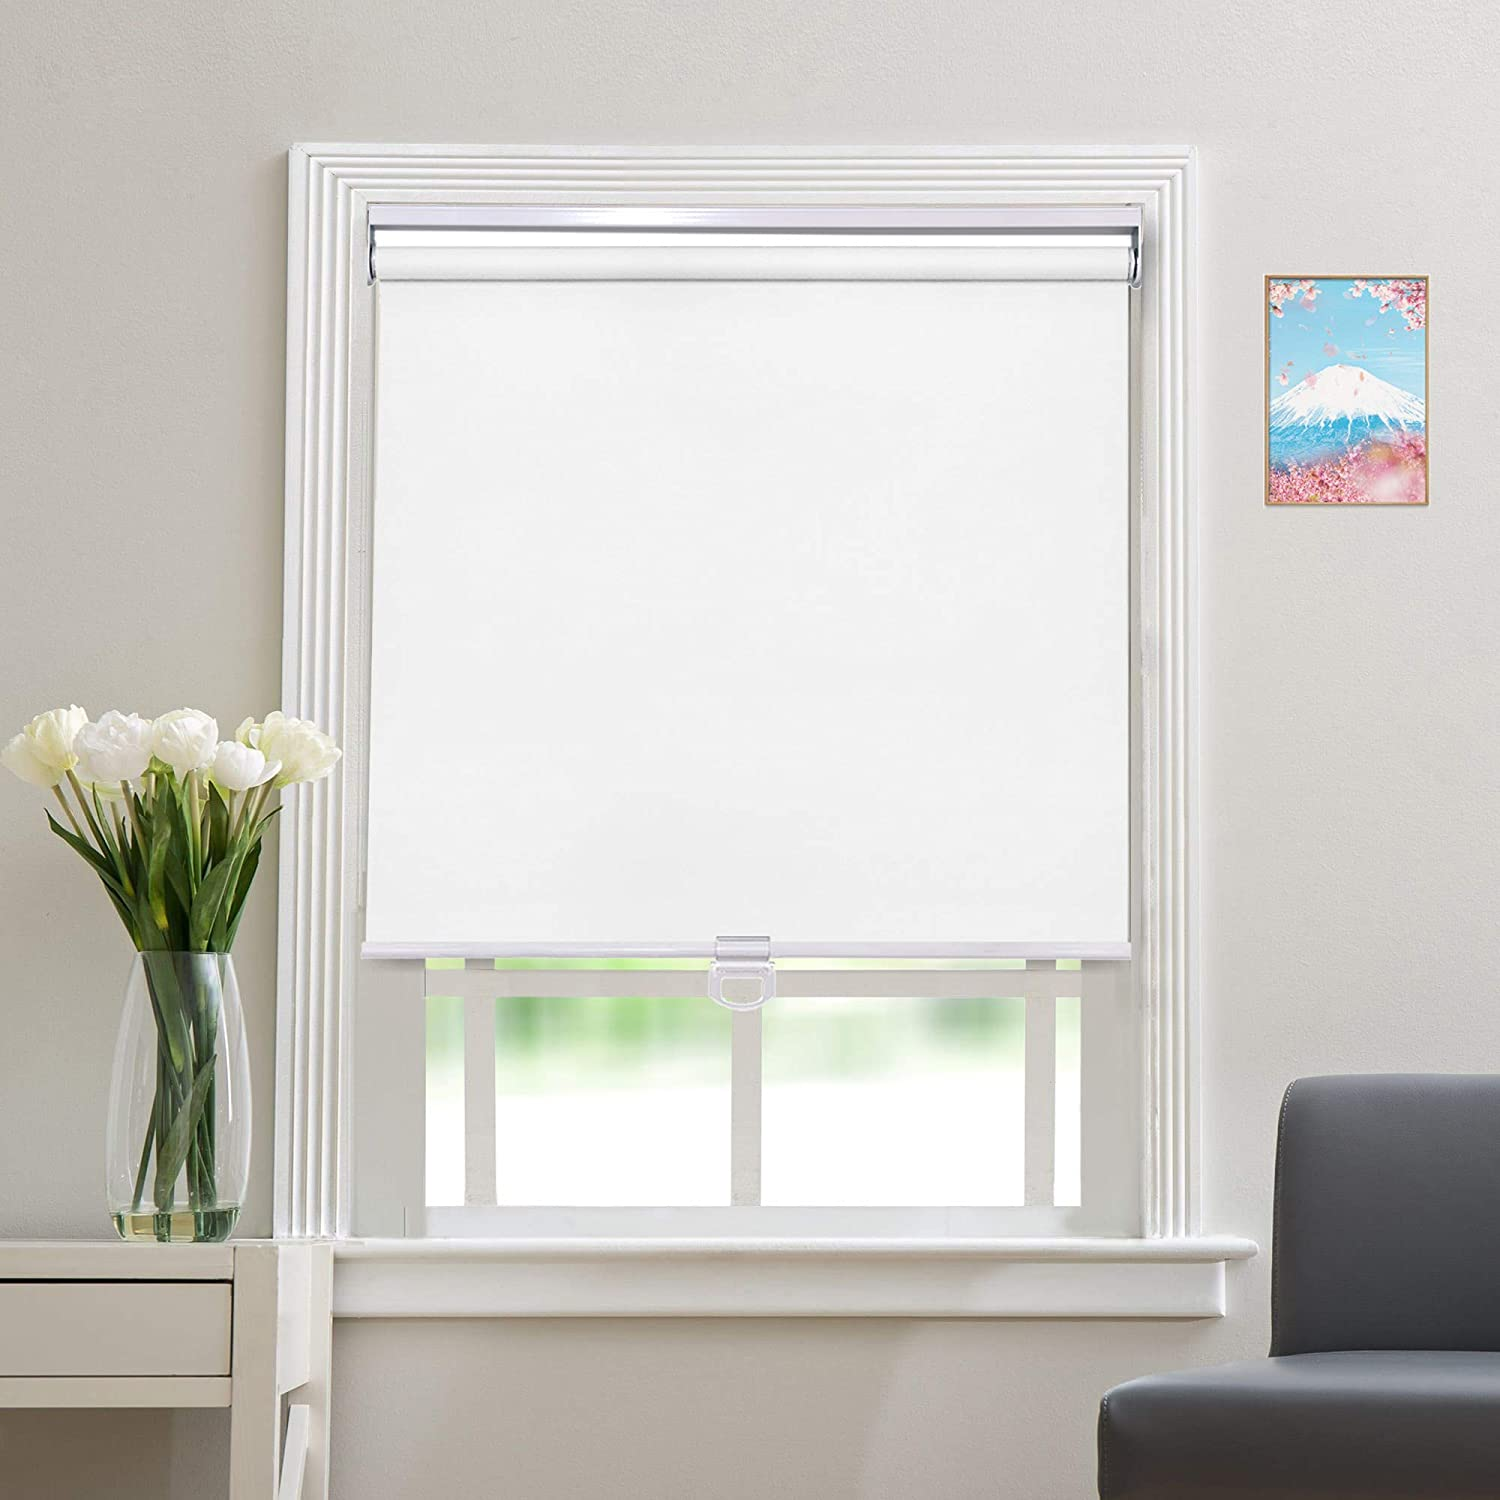 Blackout Cordless Max 56% OFF Roller Blinds Max 83% OFF and Shades for Safety - Windows